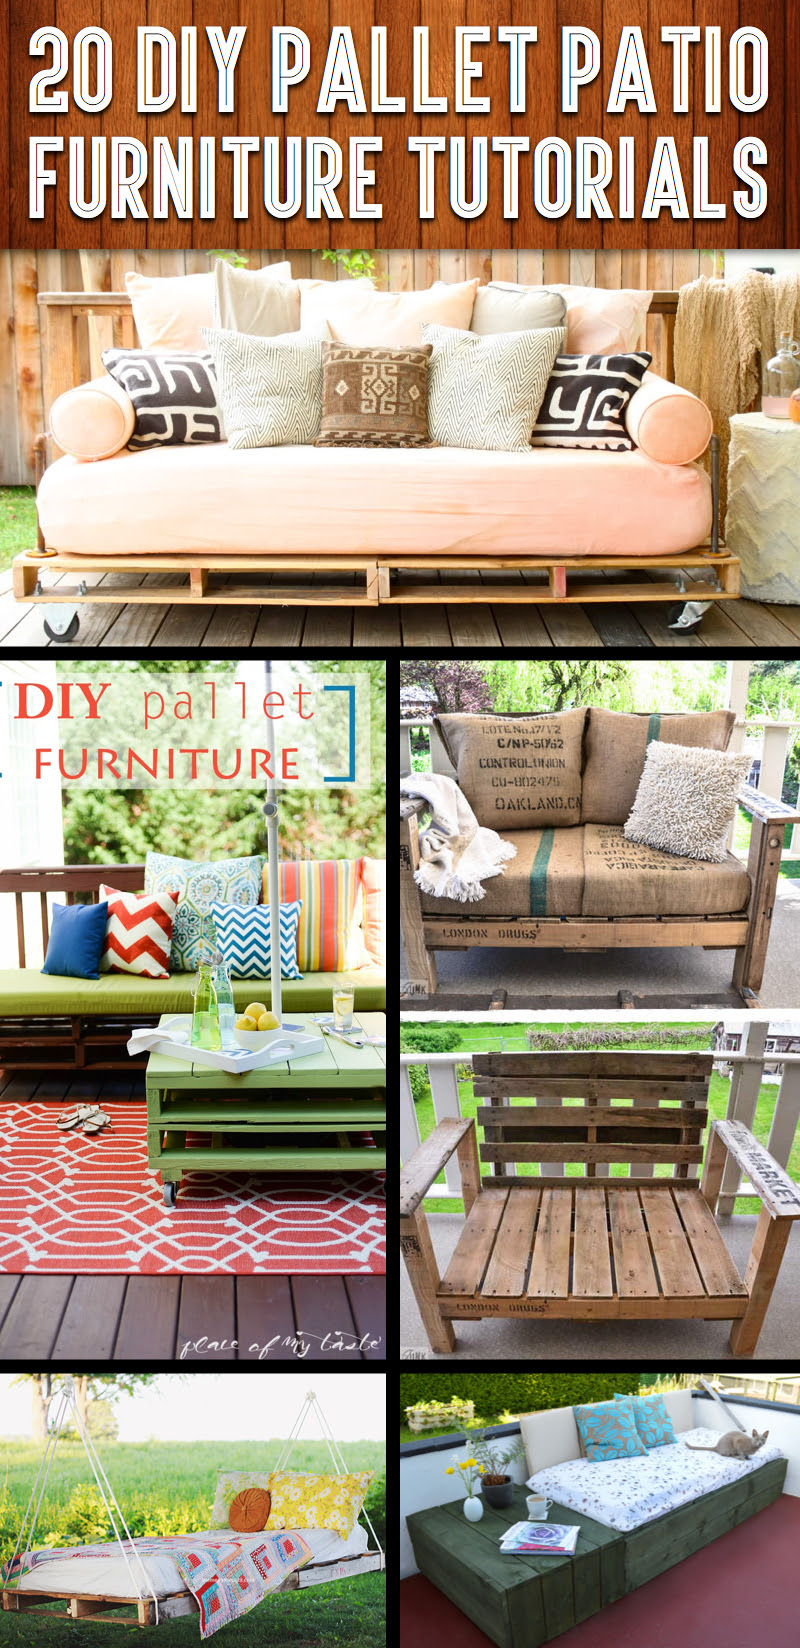 20 DIY Pallet Patio Furniture Tutorials For A Chic And Practical Outdoor Patio cover